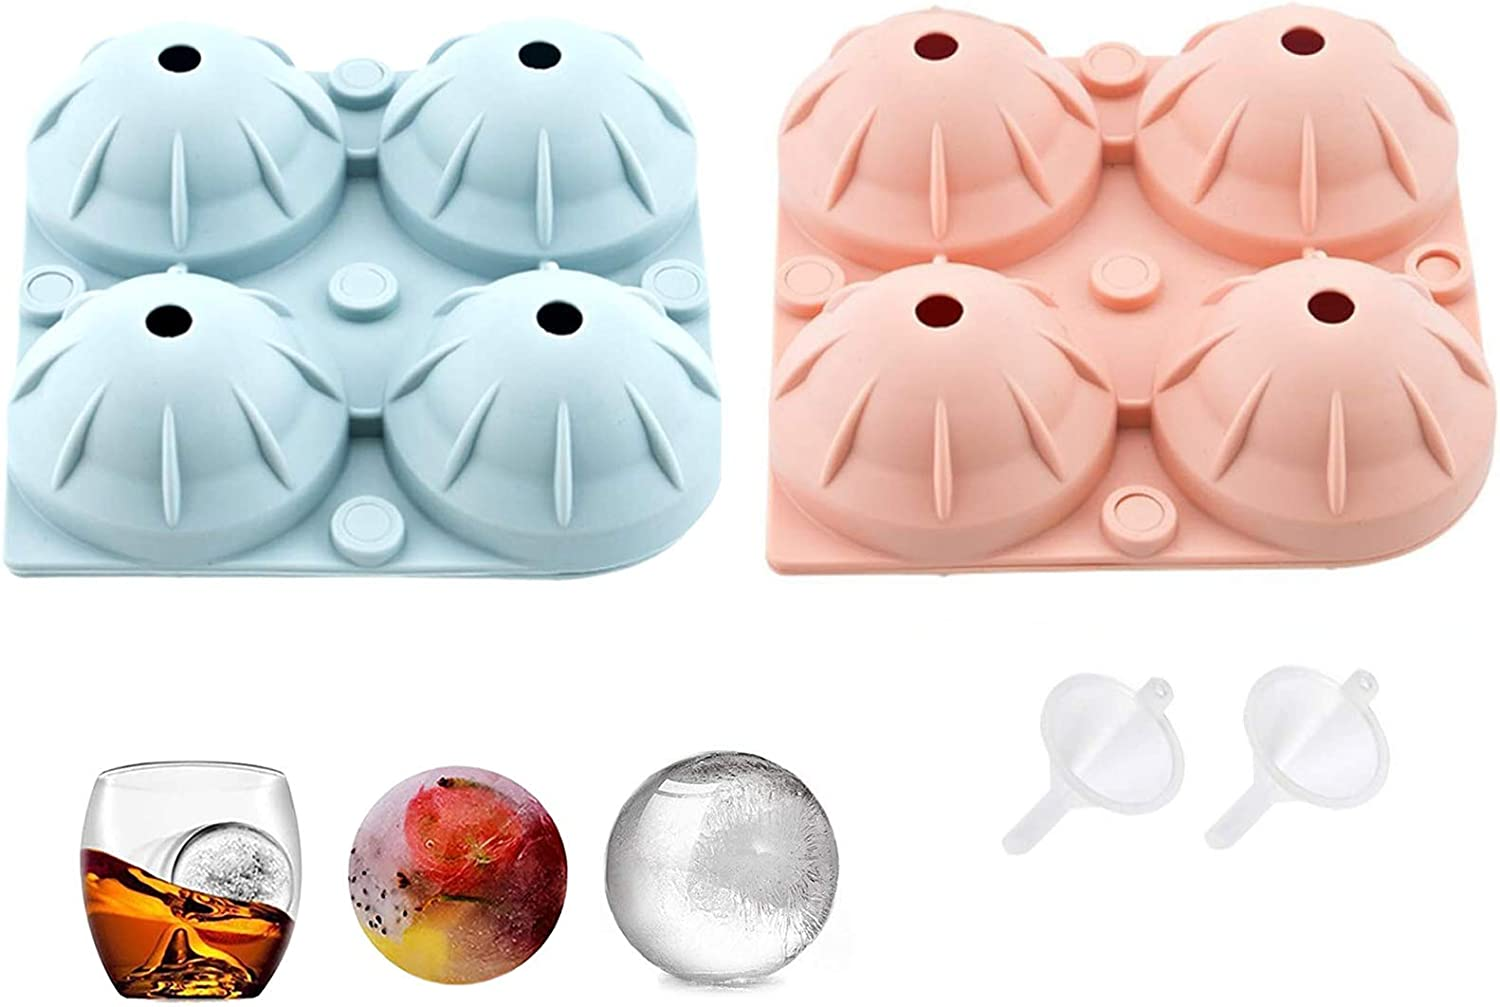 2Pcs ice Cube Trays ,Large Sphere Ice Mold, easy release ice mold cocktail and reusable Scotch whisky Tray keep drinks and fruit refrigerated Novelty Food-Grade Silicone Ice Mold Tray 2 funnel gift